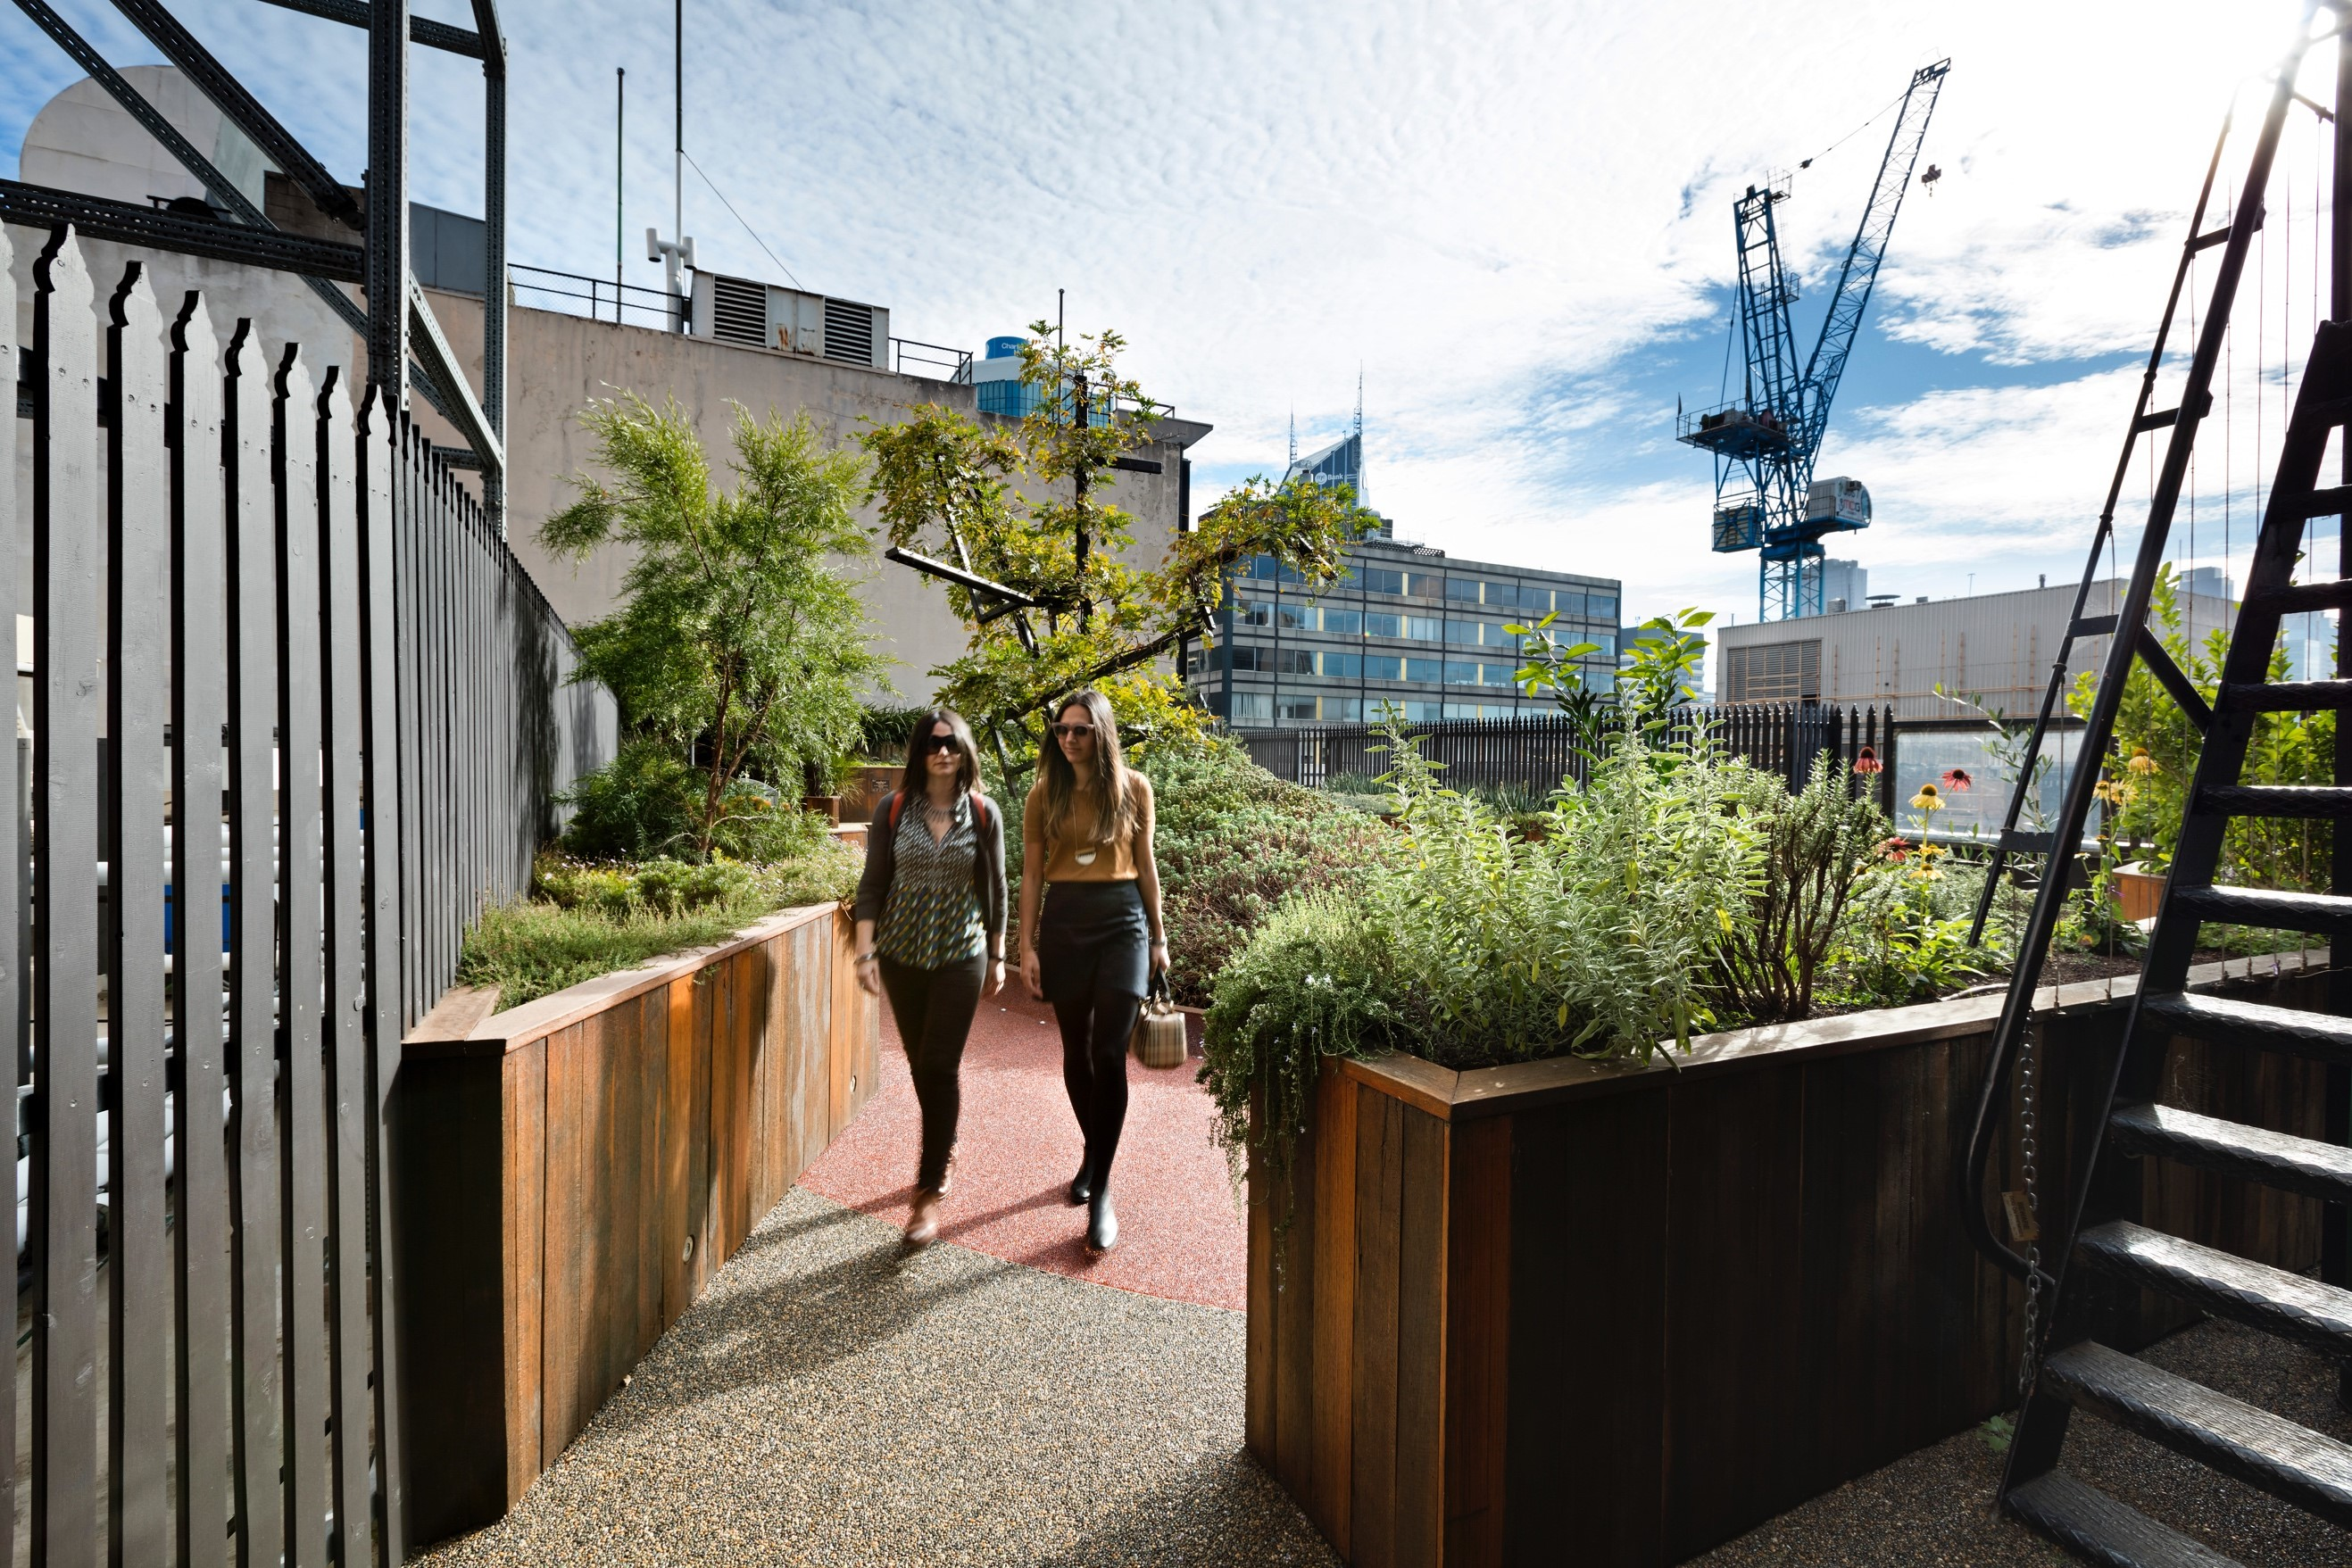 Gallery Of Growing Up Green Rooftop By Bent Architecture Local Australian Architecture & Design Melbourne, Vic Image 4